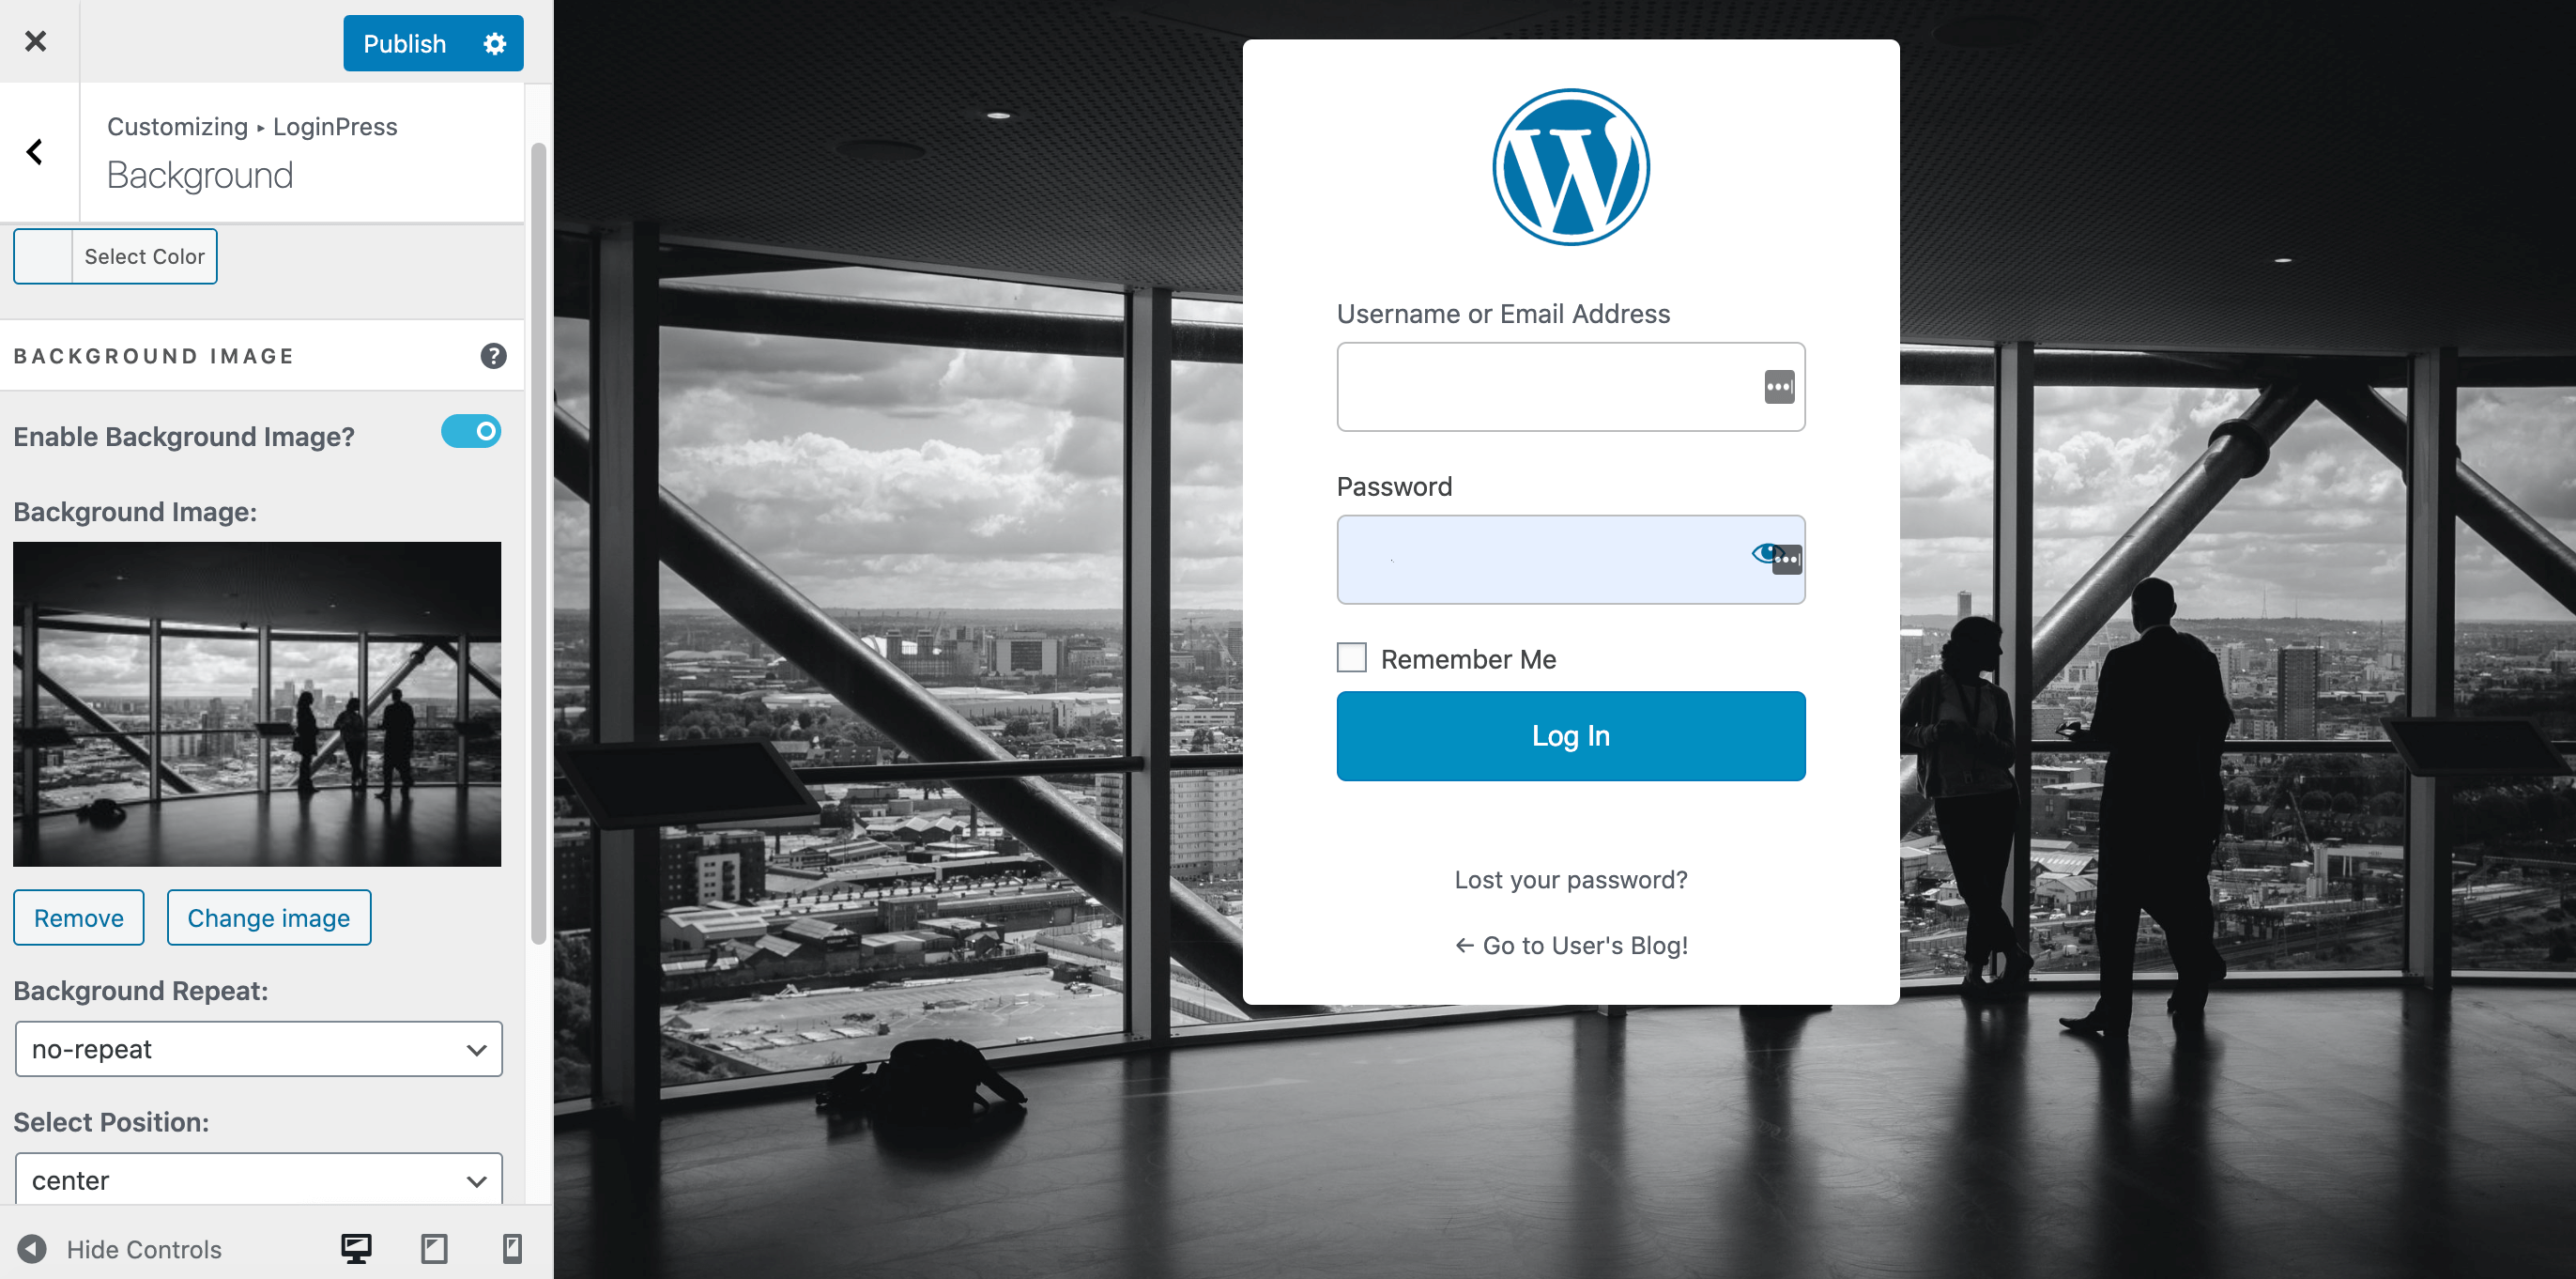 A custom WordPress login page created using LoginPress.